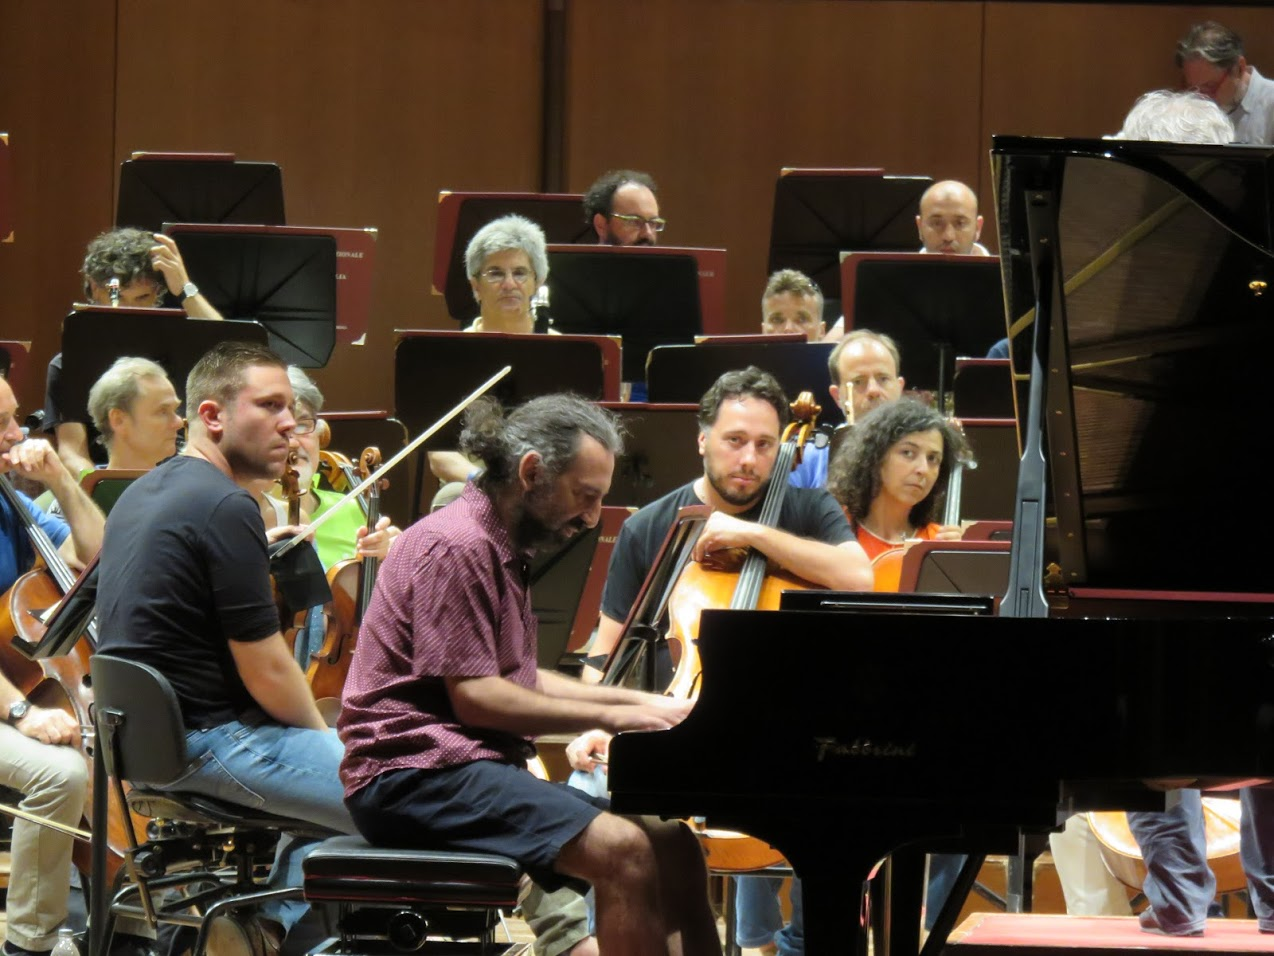 Music Academy of Santa Cecilia Orchestra open rehearsal, photo by Marianna Zsoldos